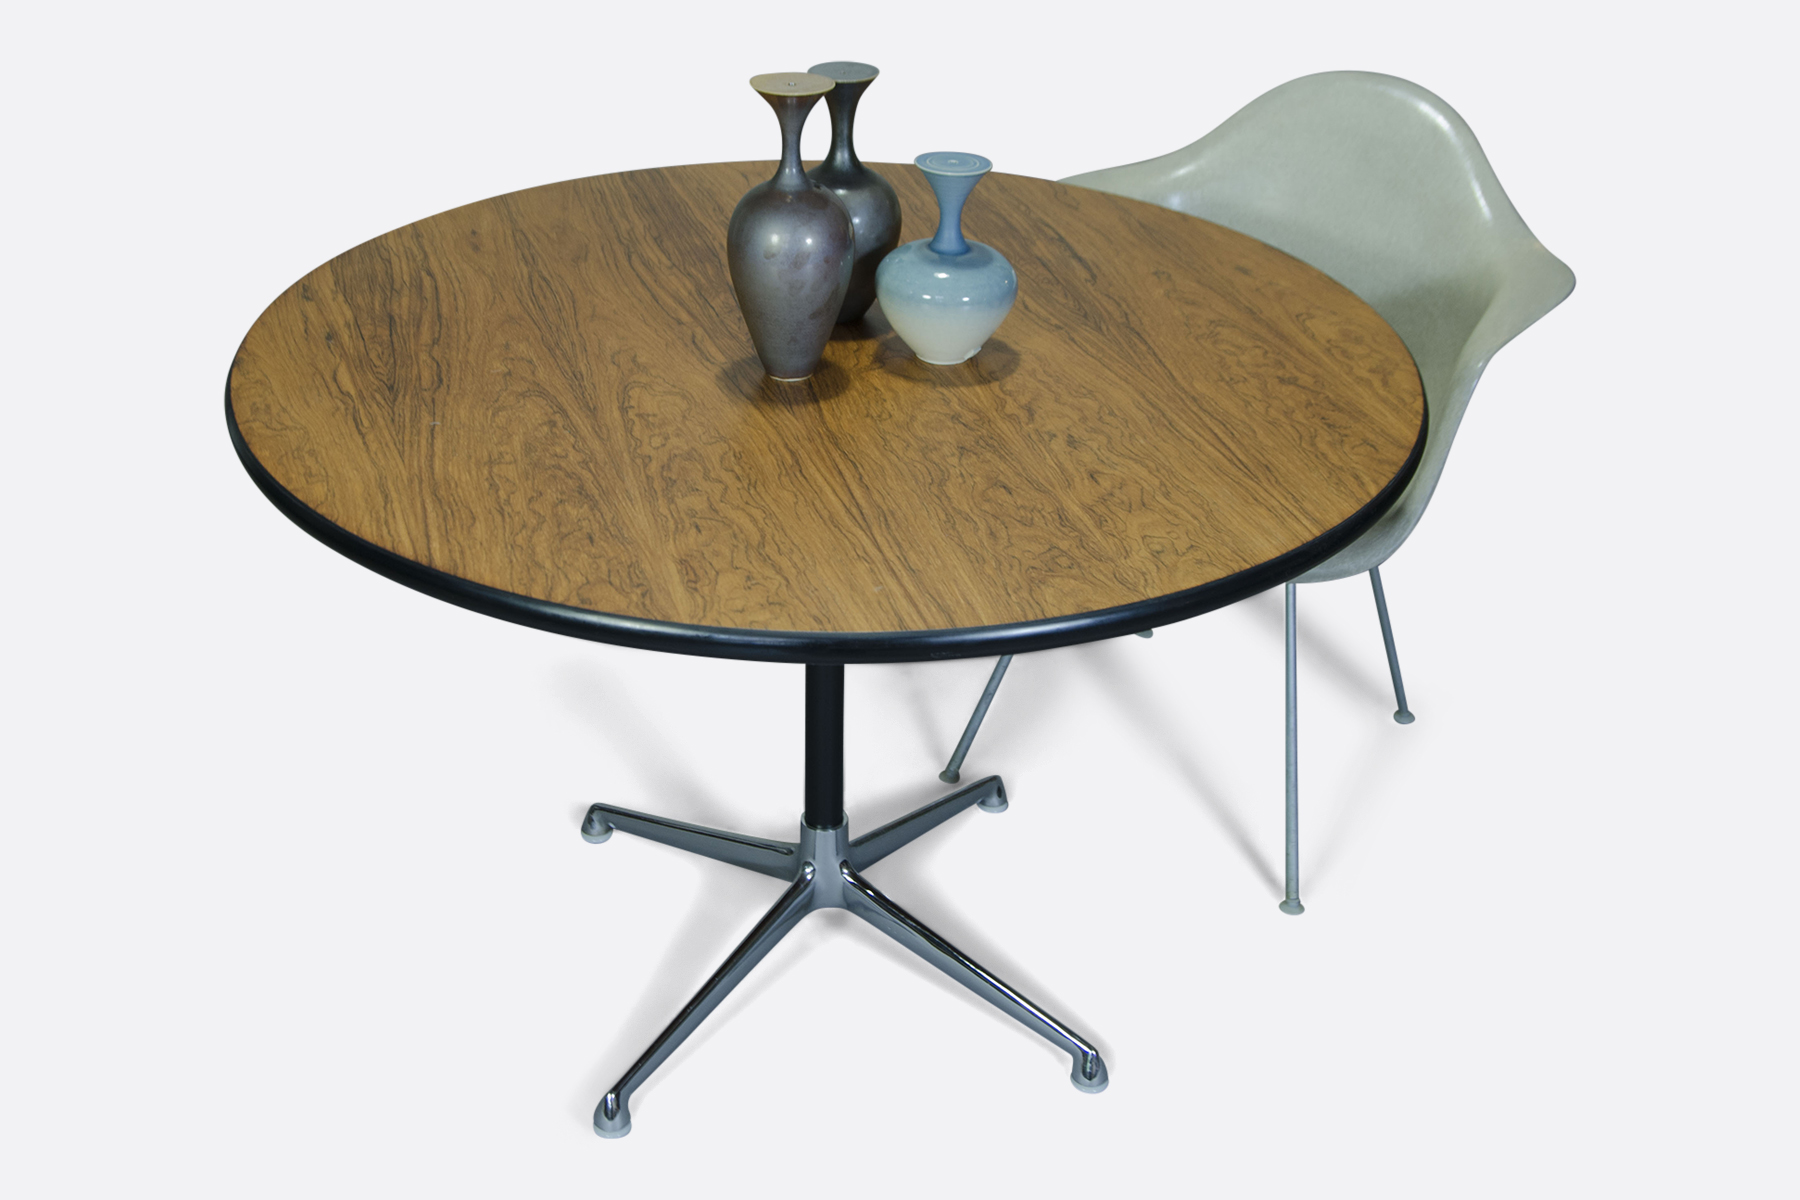 George Nelson table.5